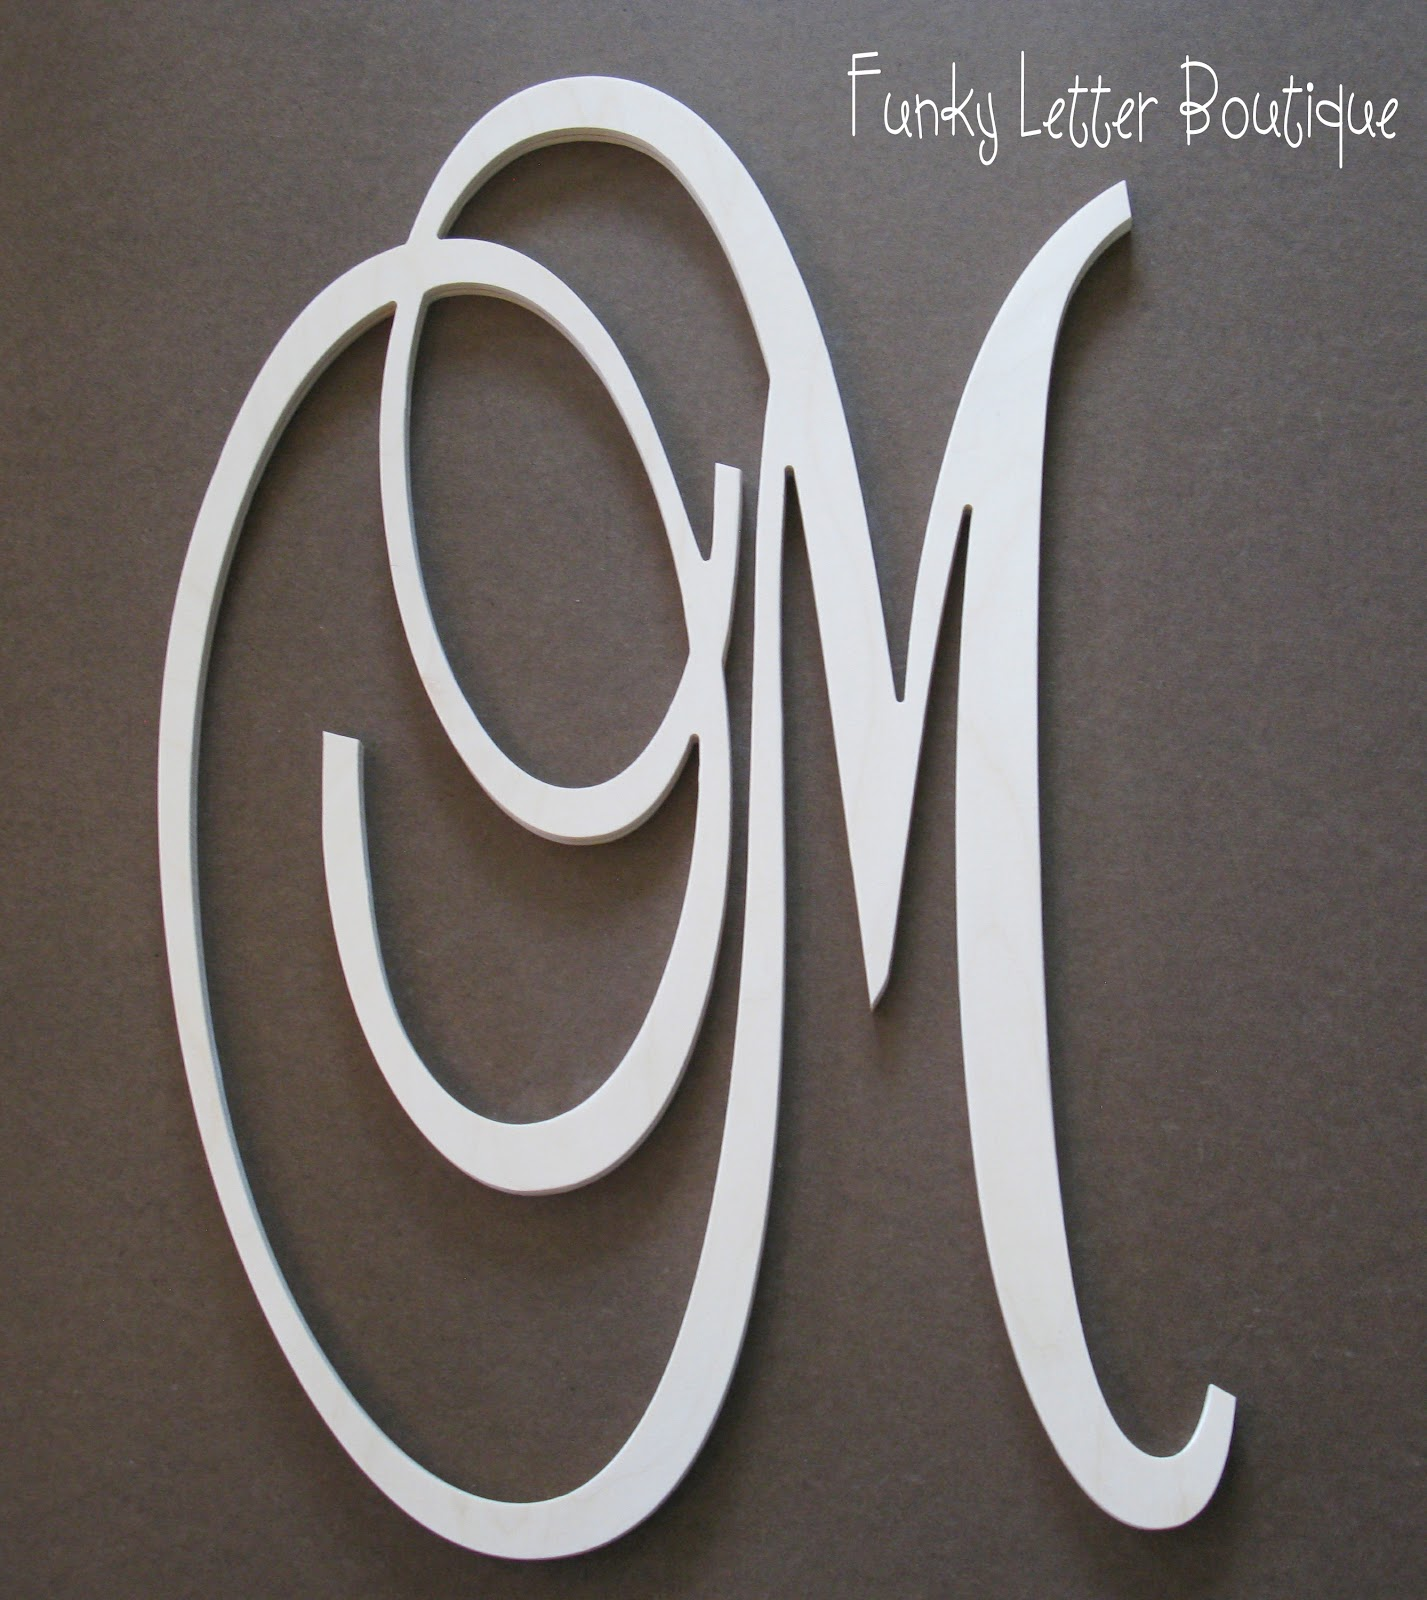 The Funky Letter Boutique Diy Wooden Letters And Home